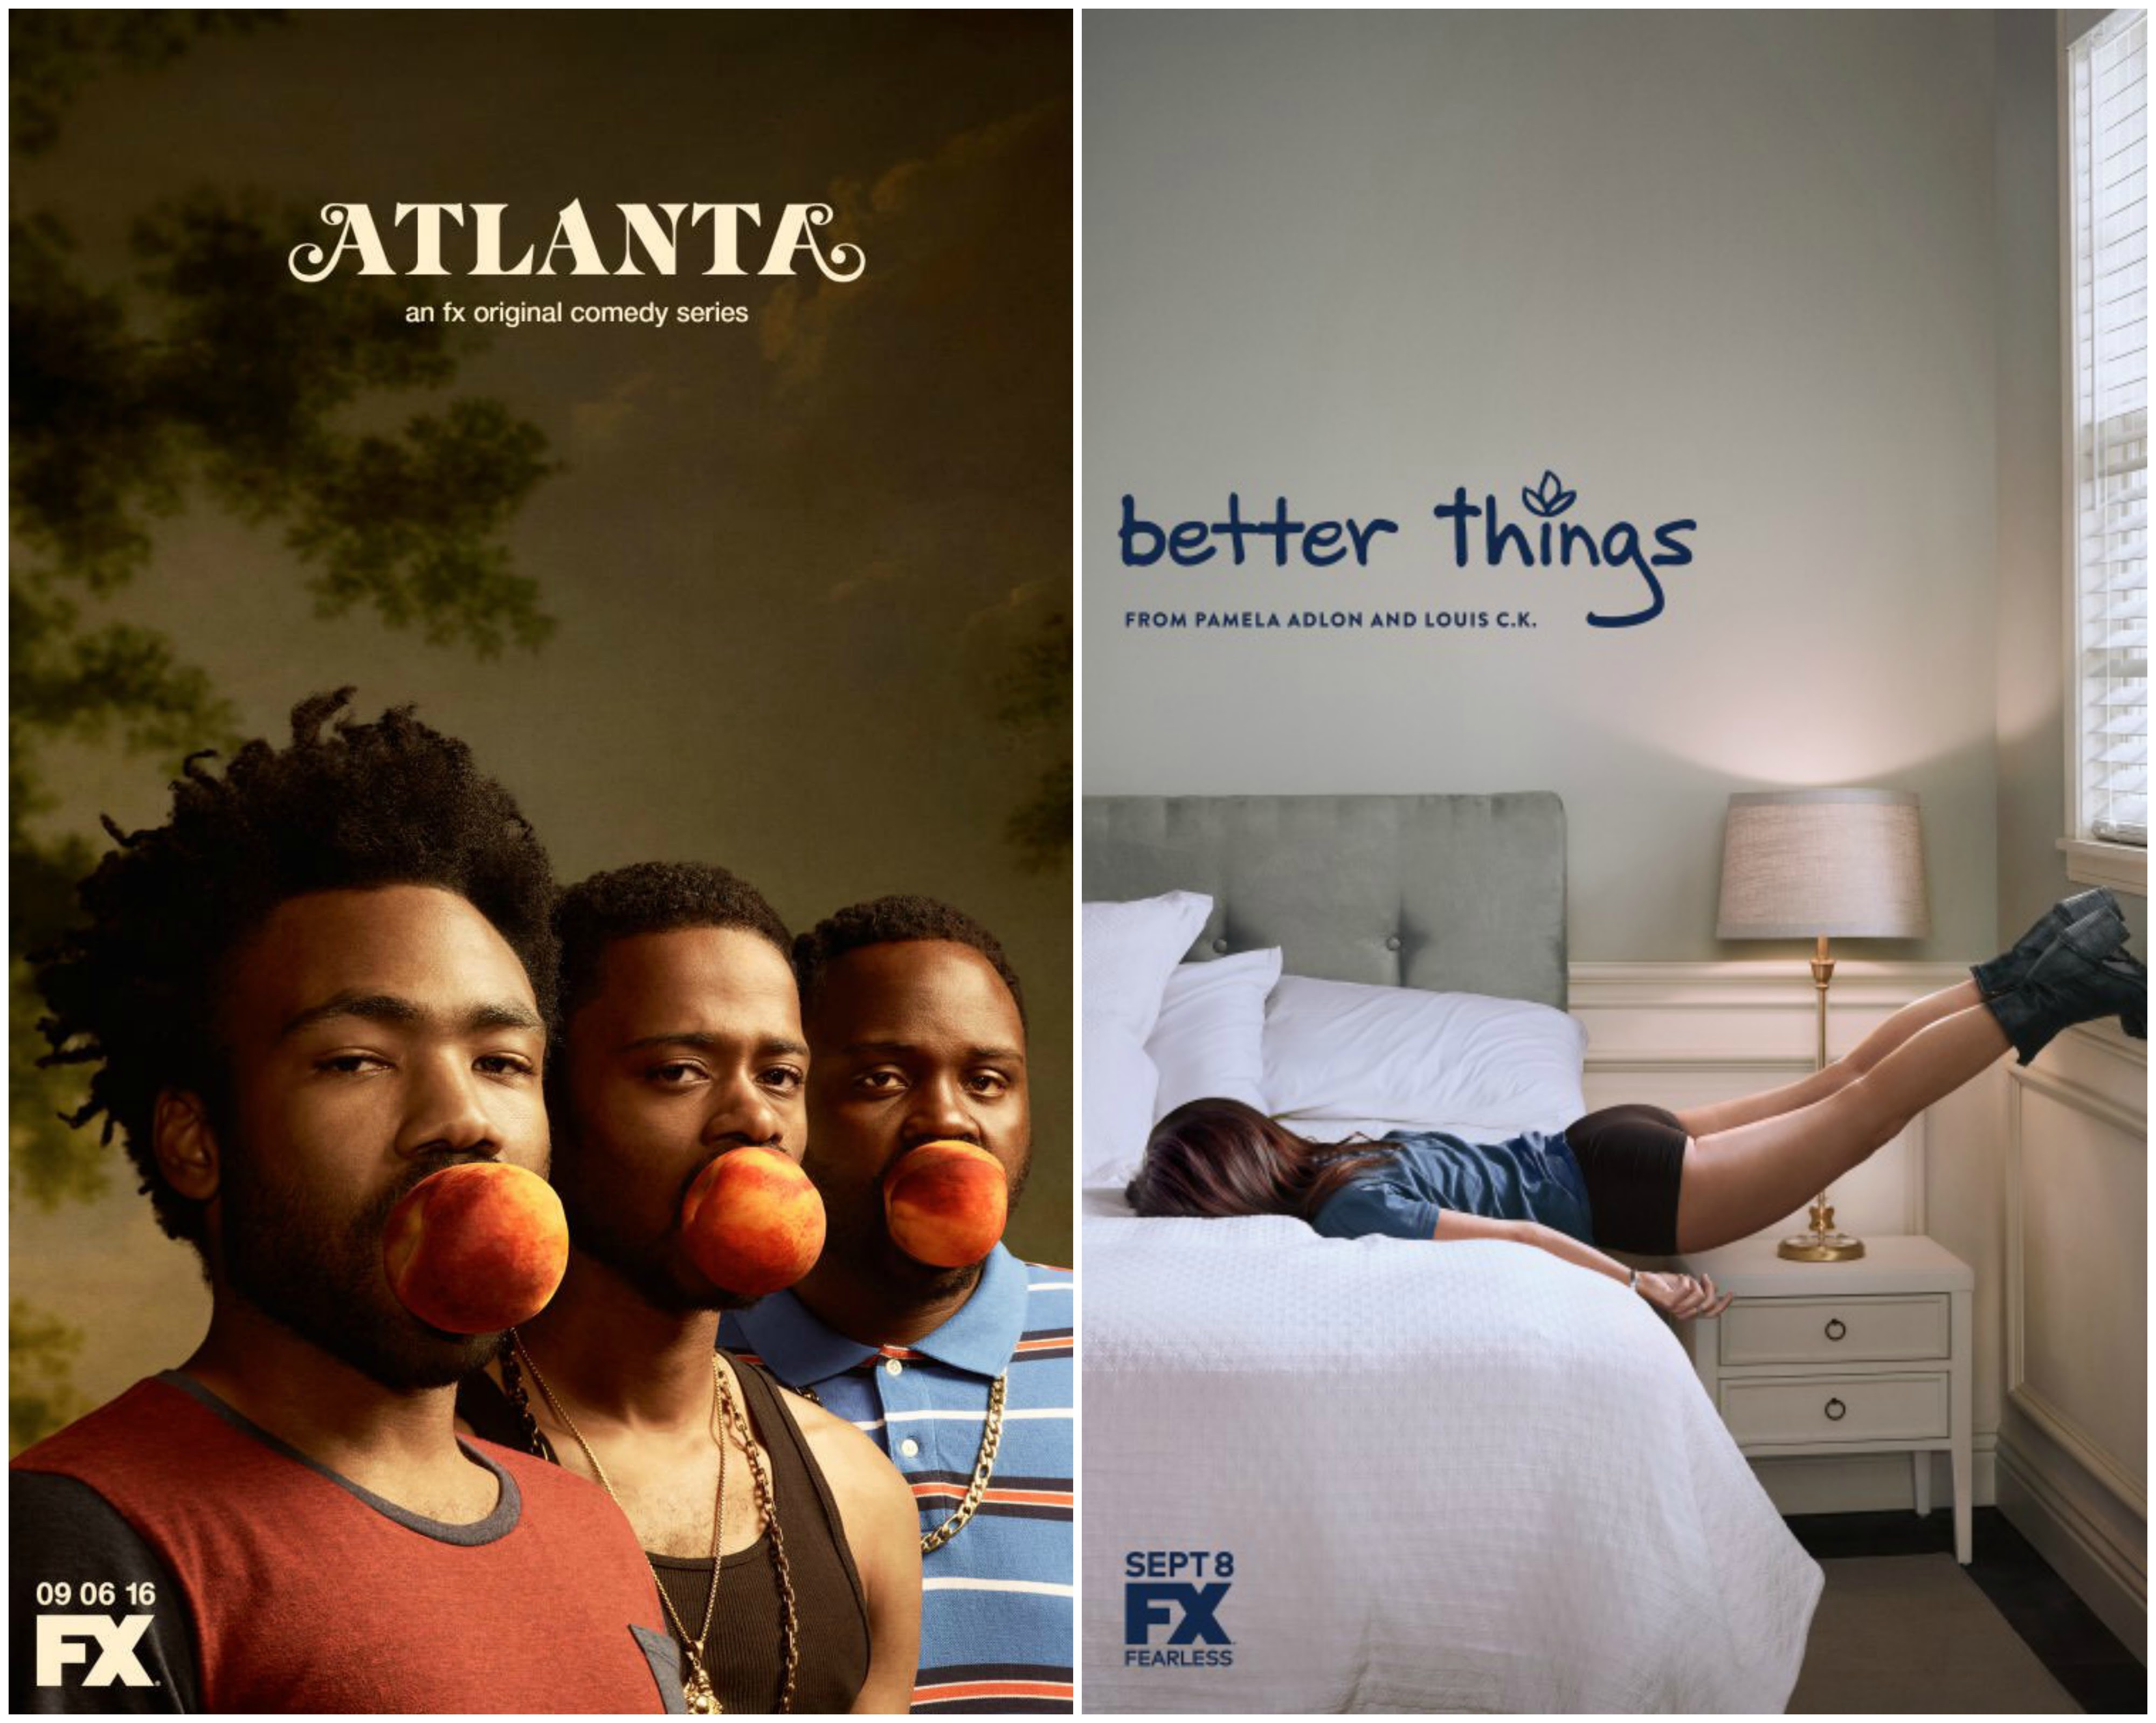 FX Renews New Comedy Series Atlanta And Better Things